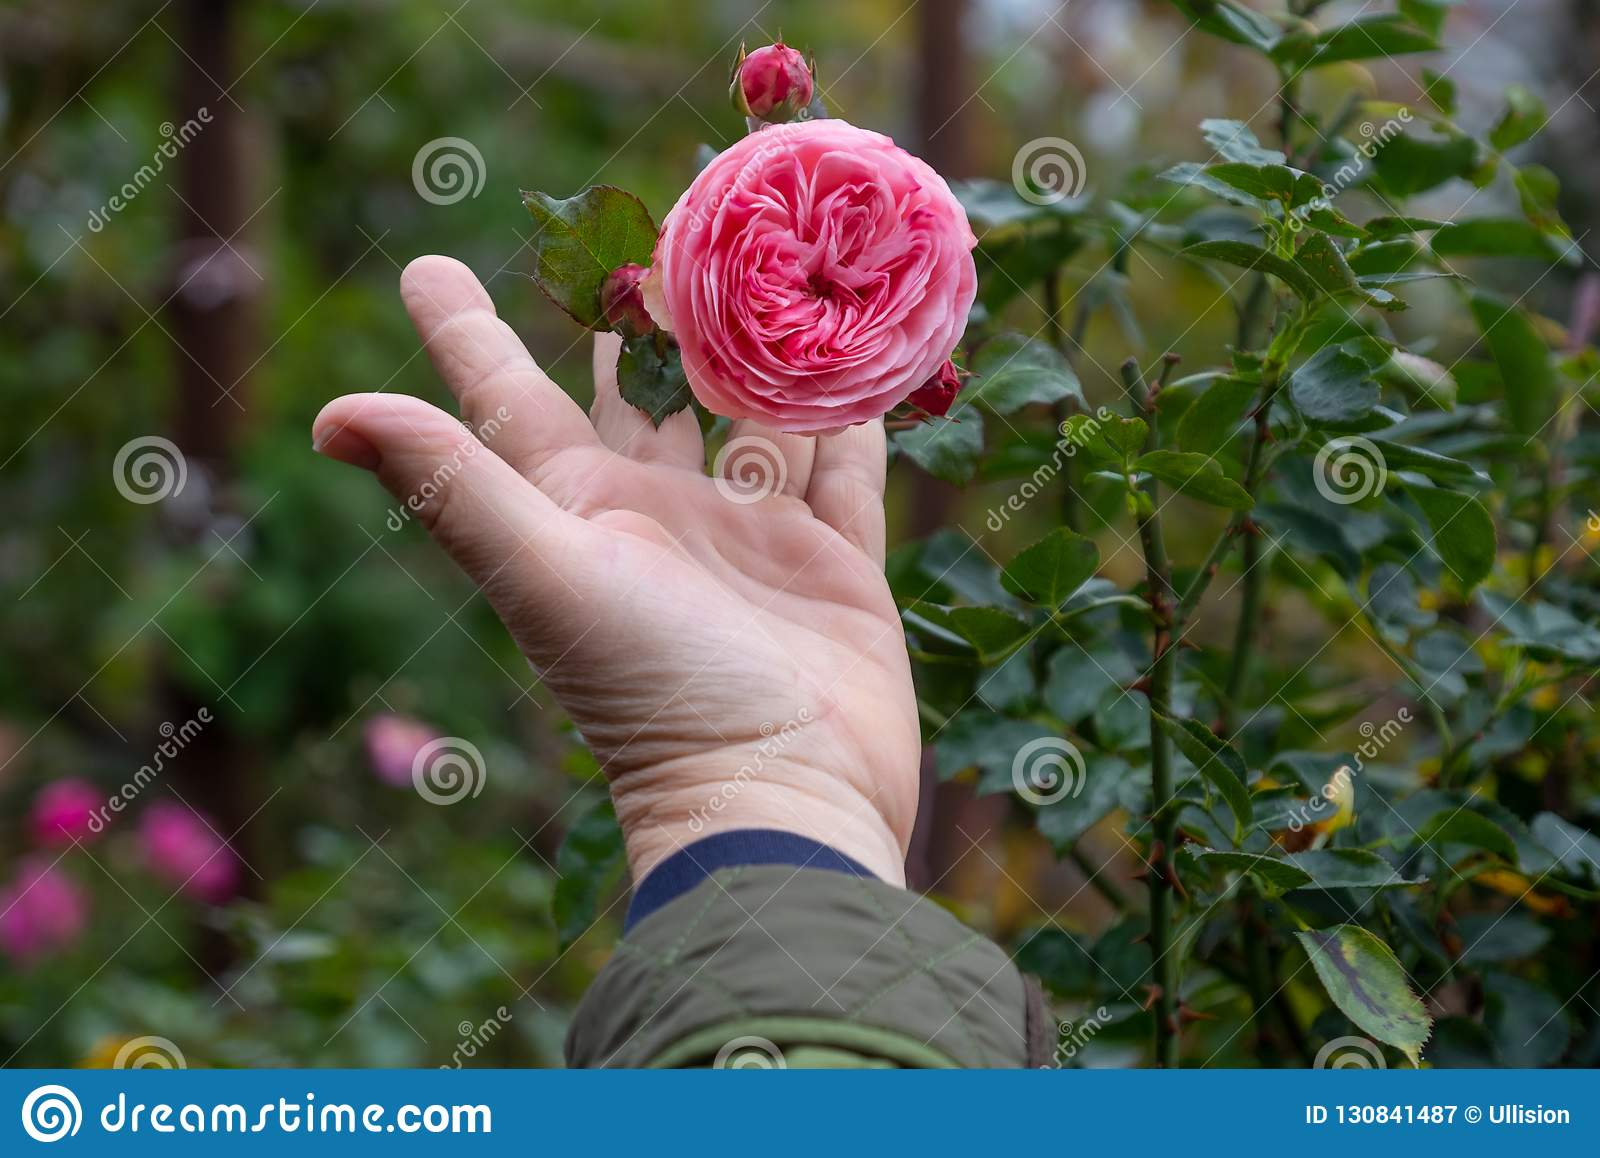 Female Gardener holding a filled pink erotic rose flower on the rose bush in the rose garden with love in her fingers